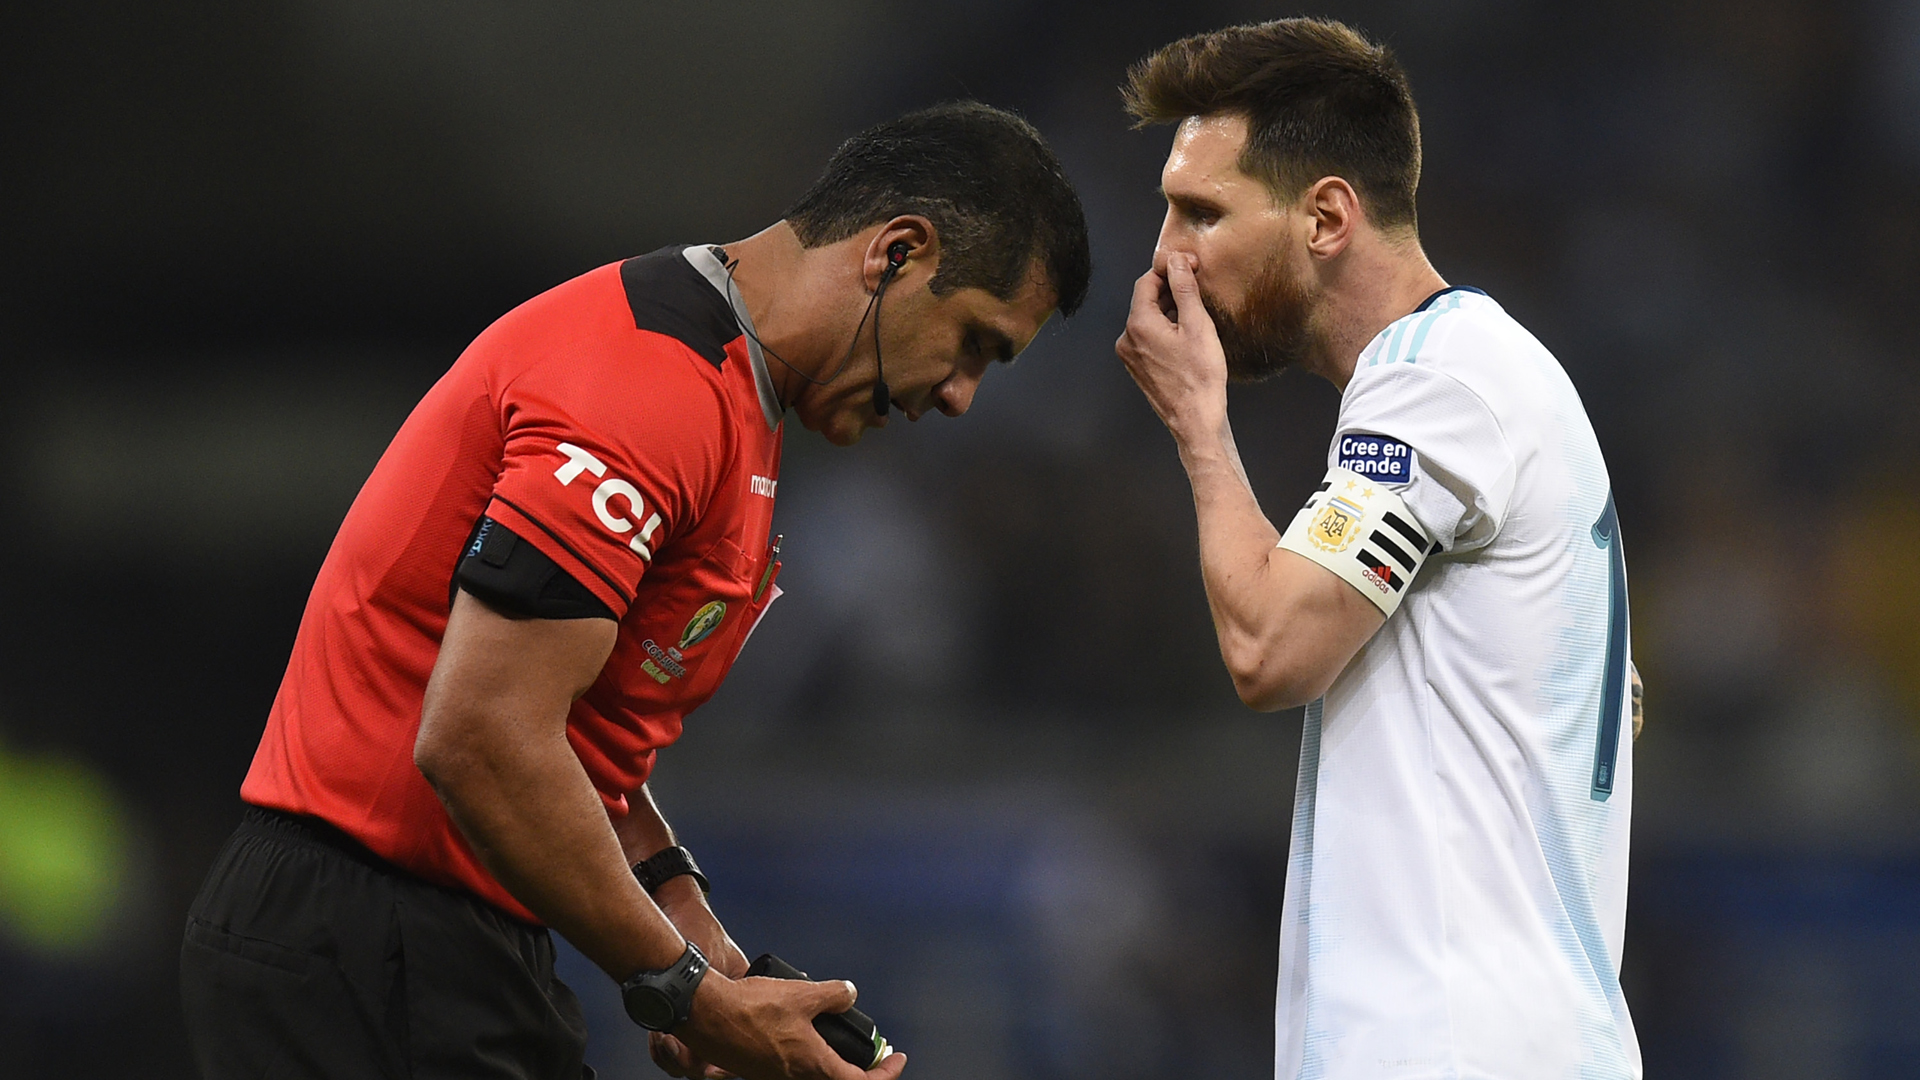 Lionel Messi blasts 'bulls—' refereeing after Argentina's Copa America loss